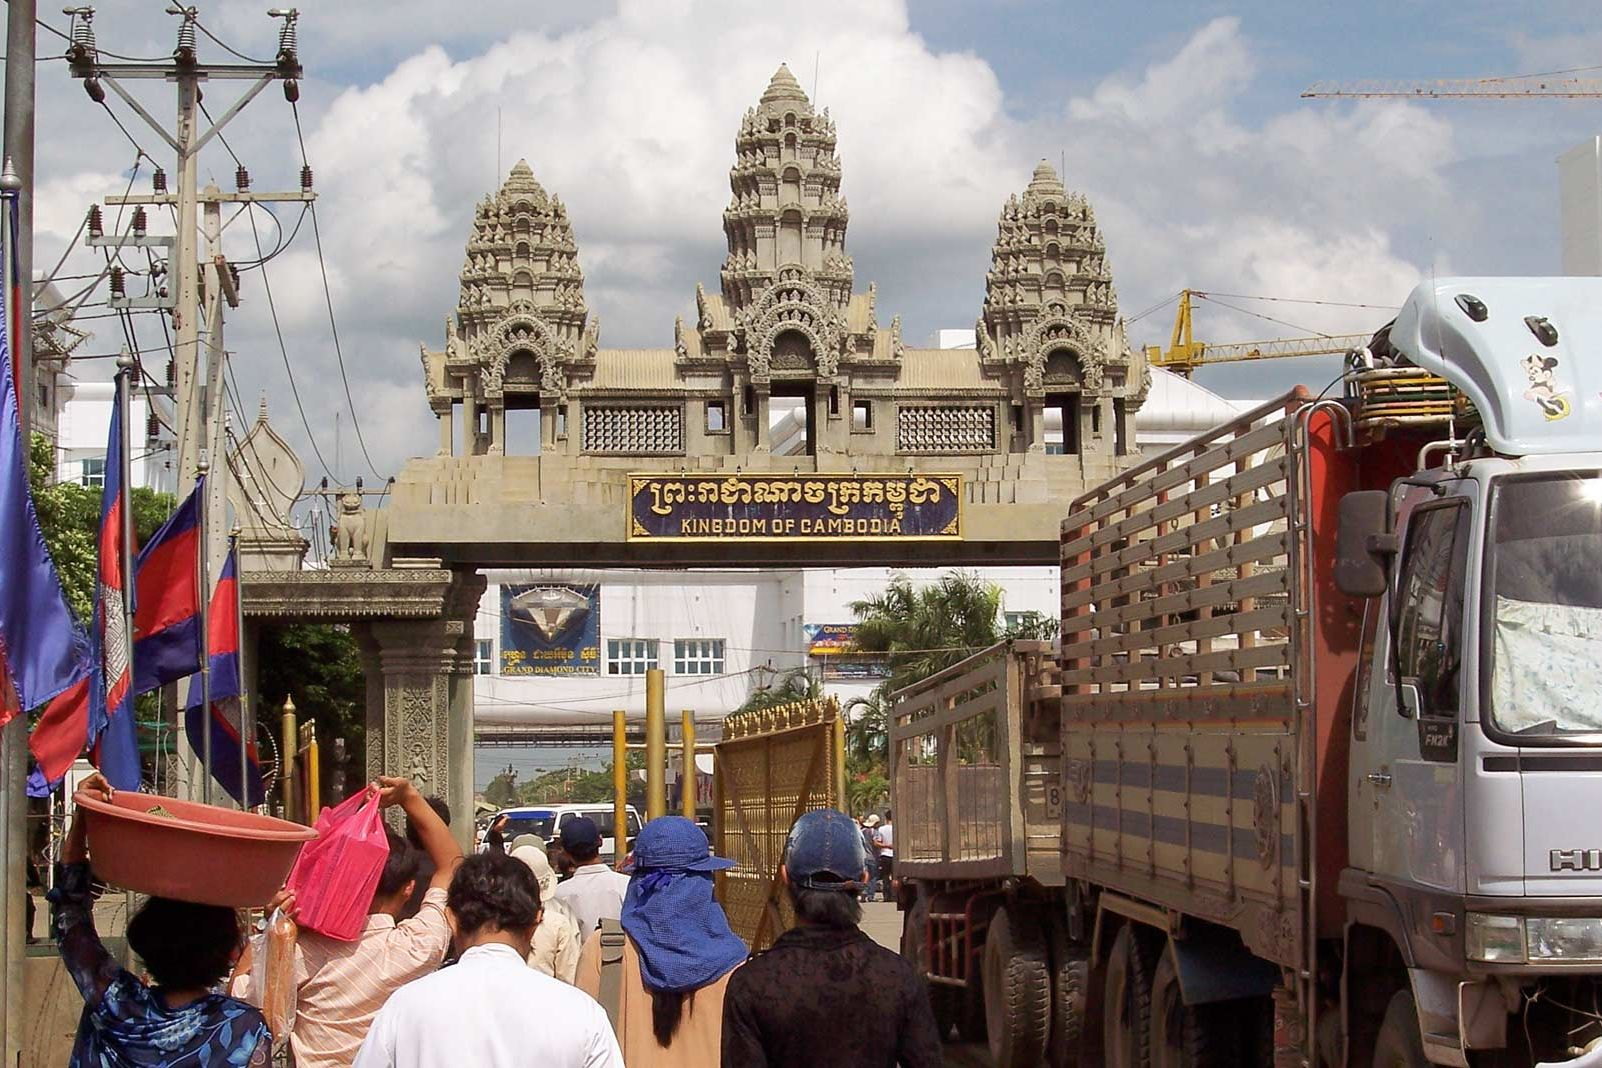 Crossing border gate in Cambodia